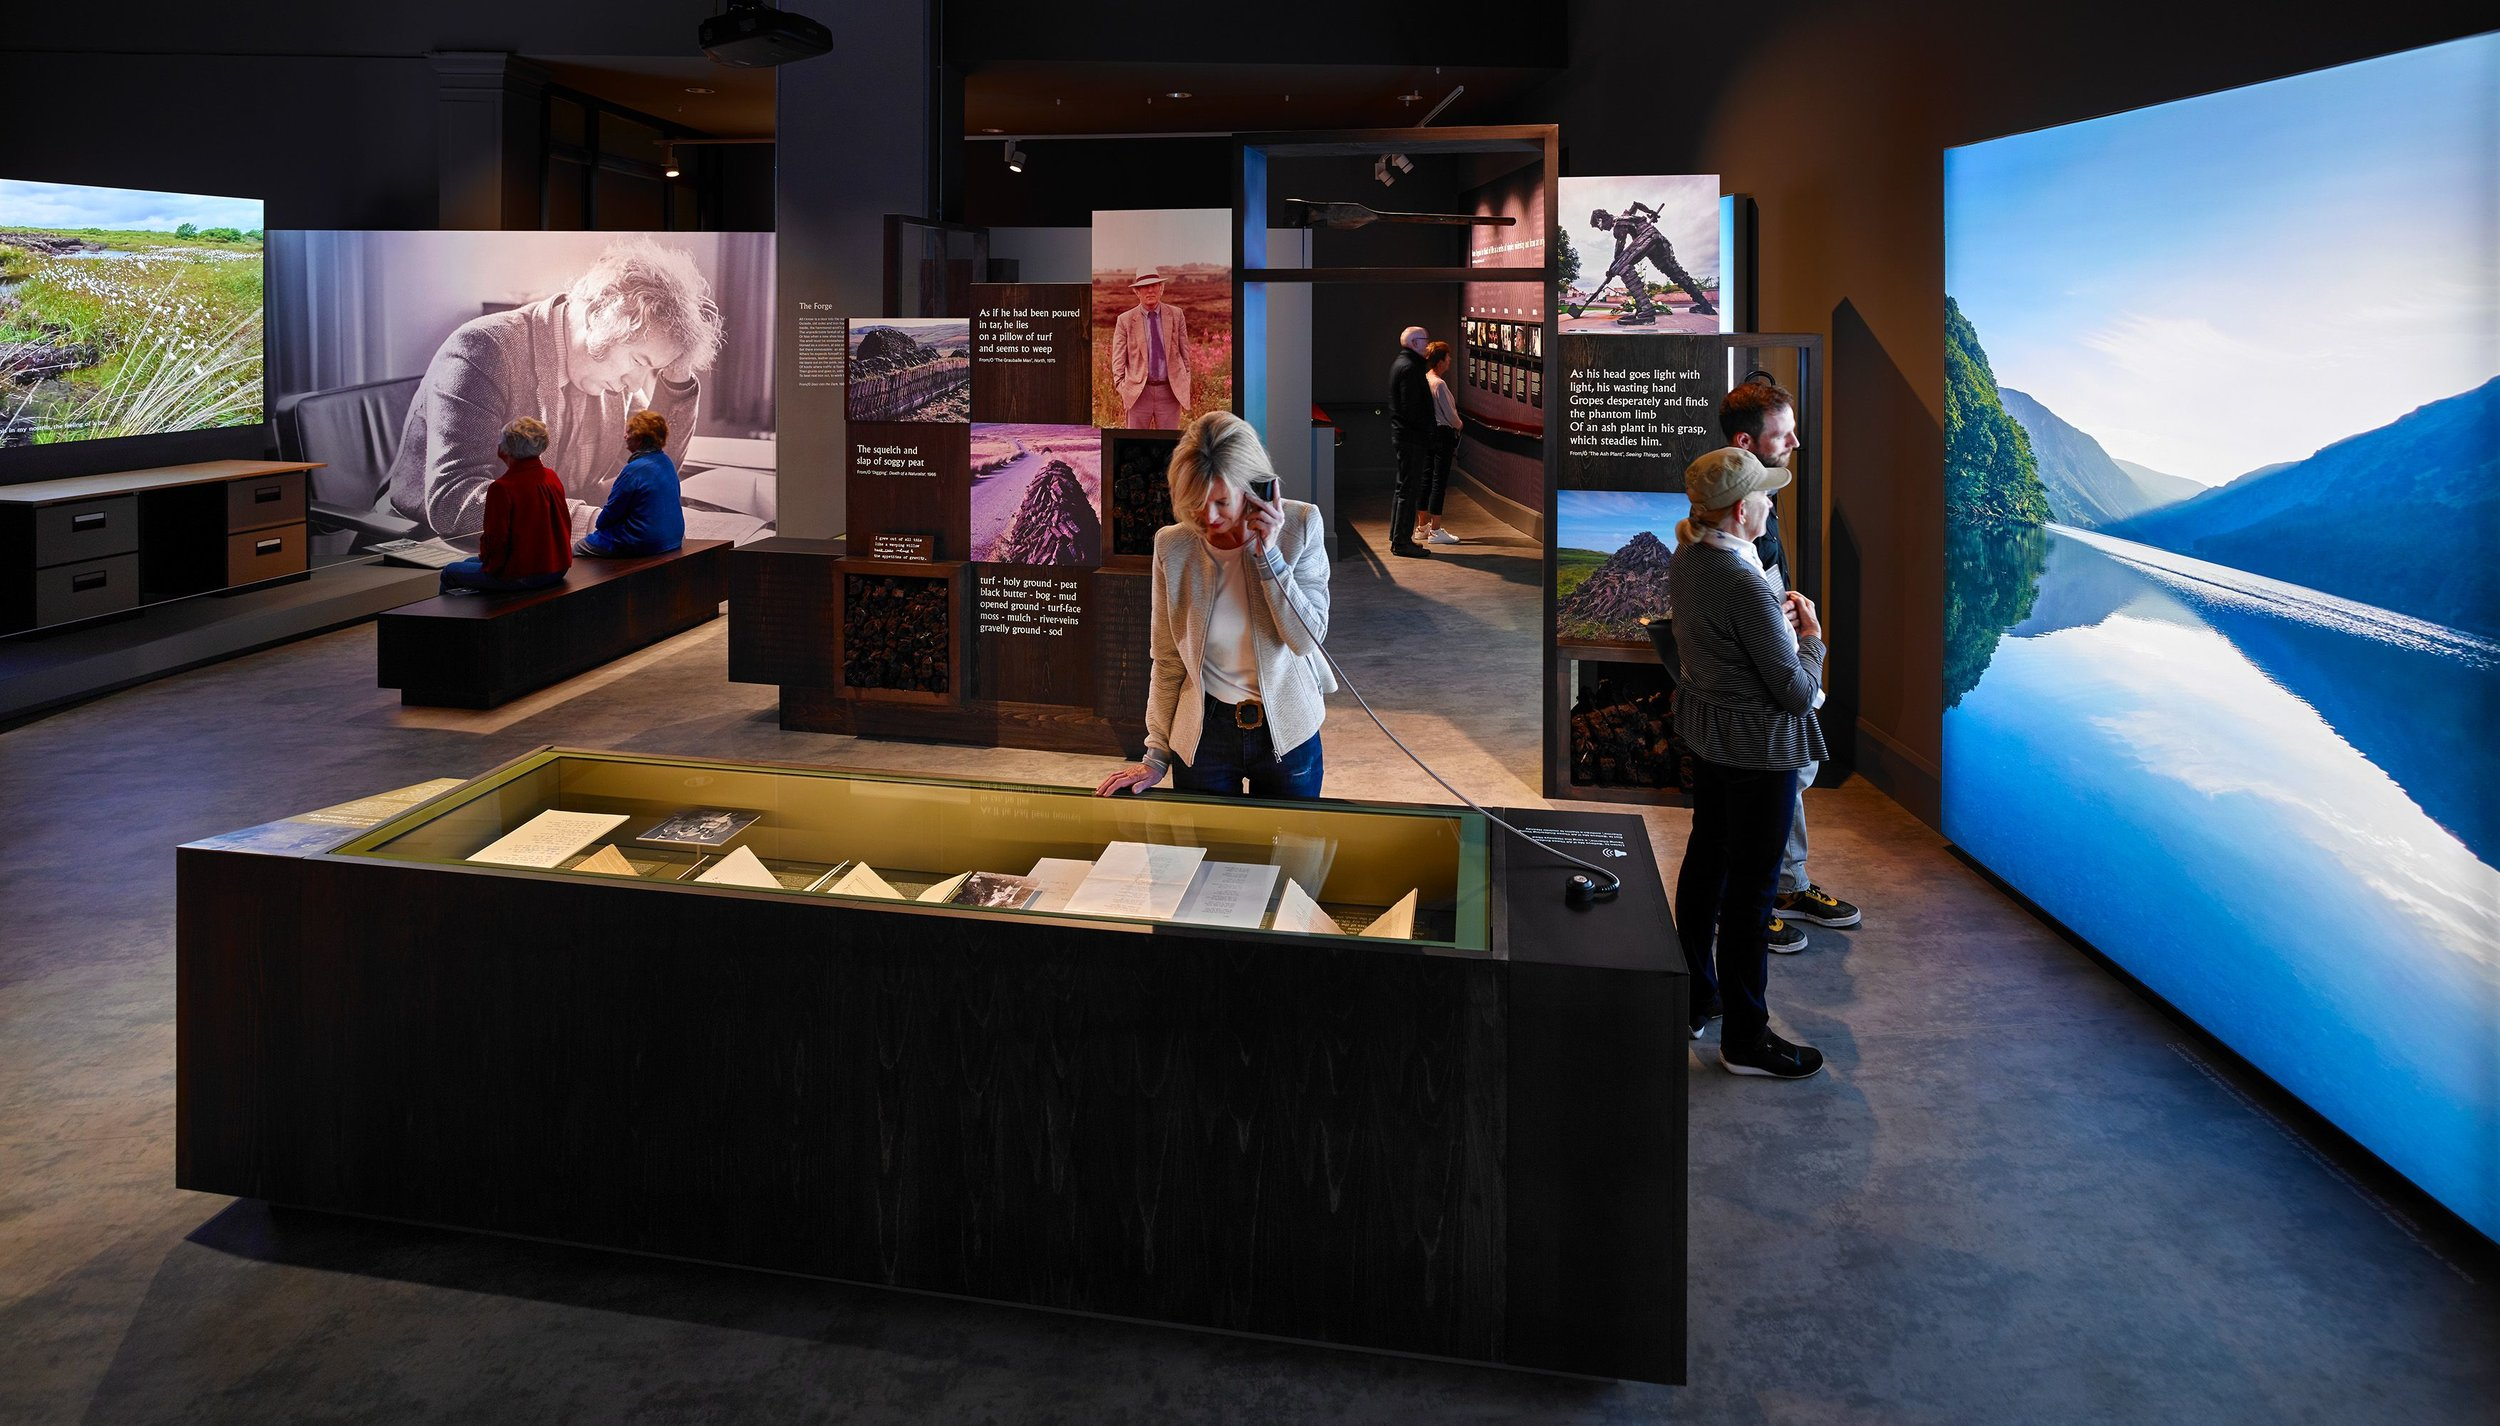 Enhancing the sense of place through words and video:  Listen Now Again, Seamus Heaney exhibition, National Library Exhibition